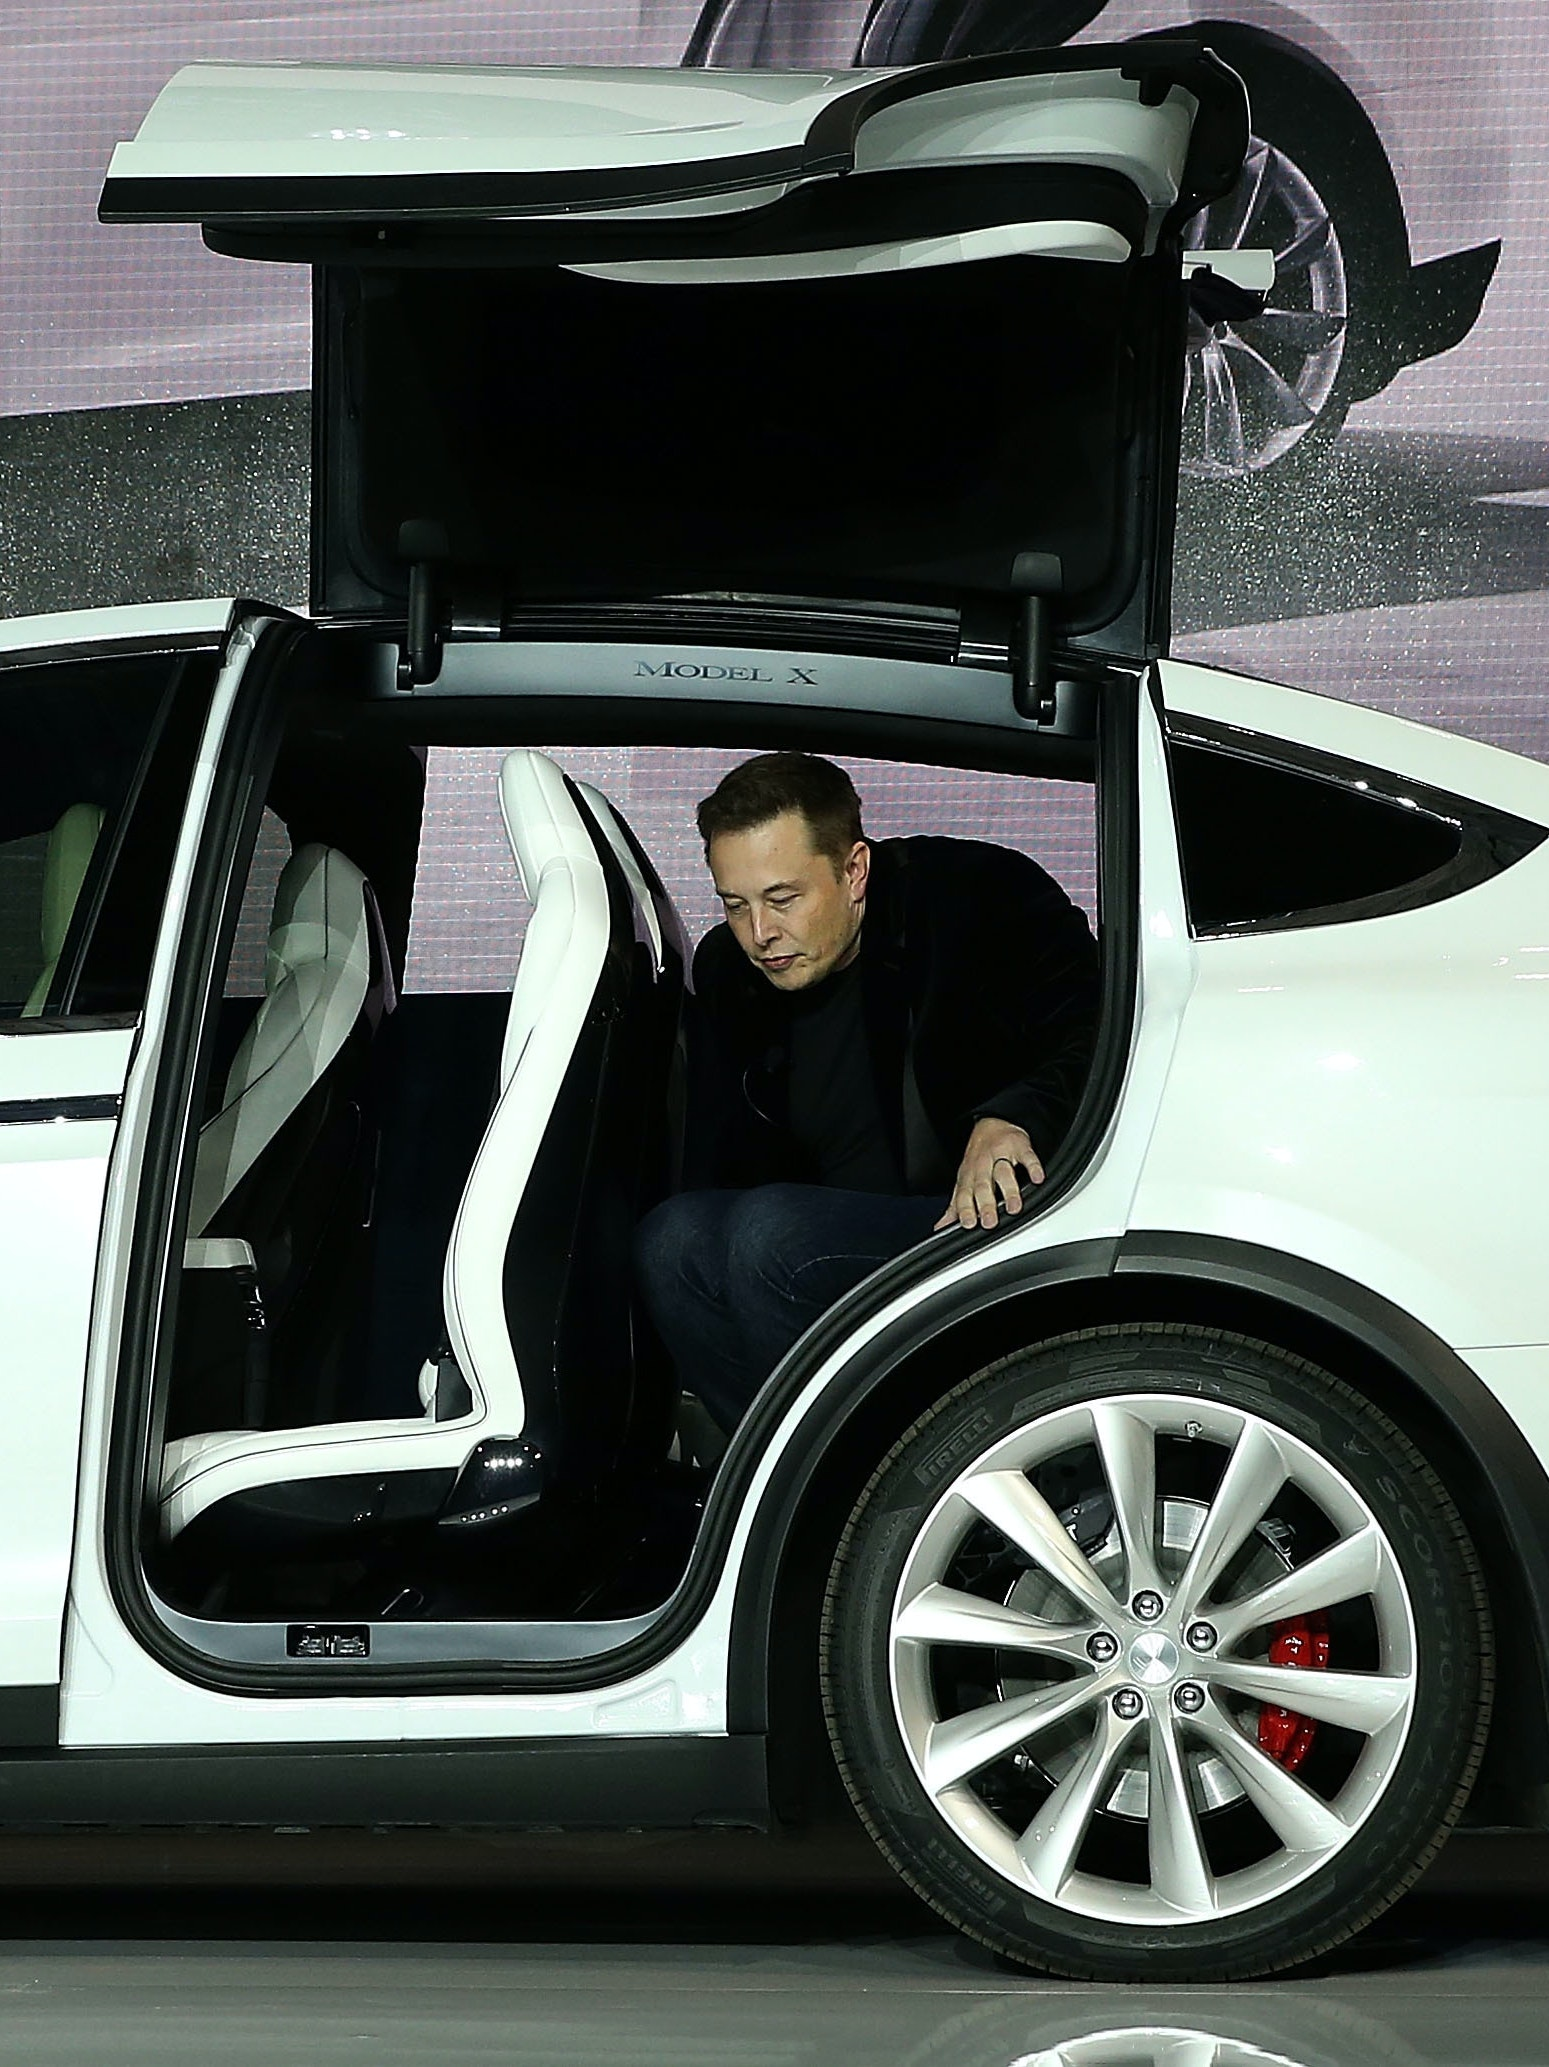 FREMONT, CA - SEPTEMBER 29:  Tesla CEO Elon Musk steps out of the new Tesla Model X during an event to launch the company's new crossover SUV on September 29, 2015 in Fremont, California. After several production delays, Elon Musk officially launched the much anticipated Tesla Model X Crossover SUV. The  (Photo by Justin Sullivan/Getty Images)